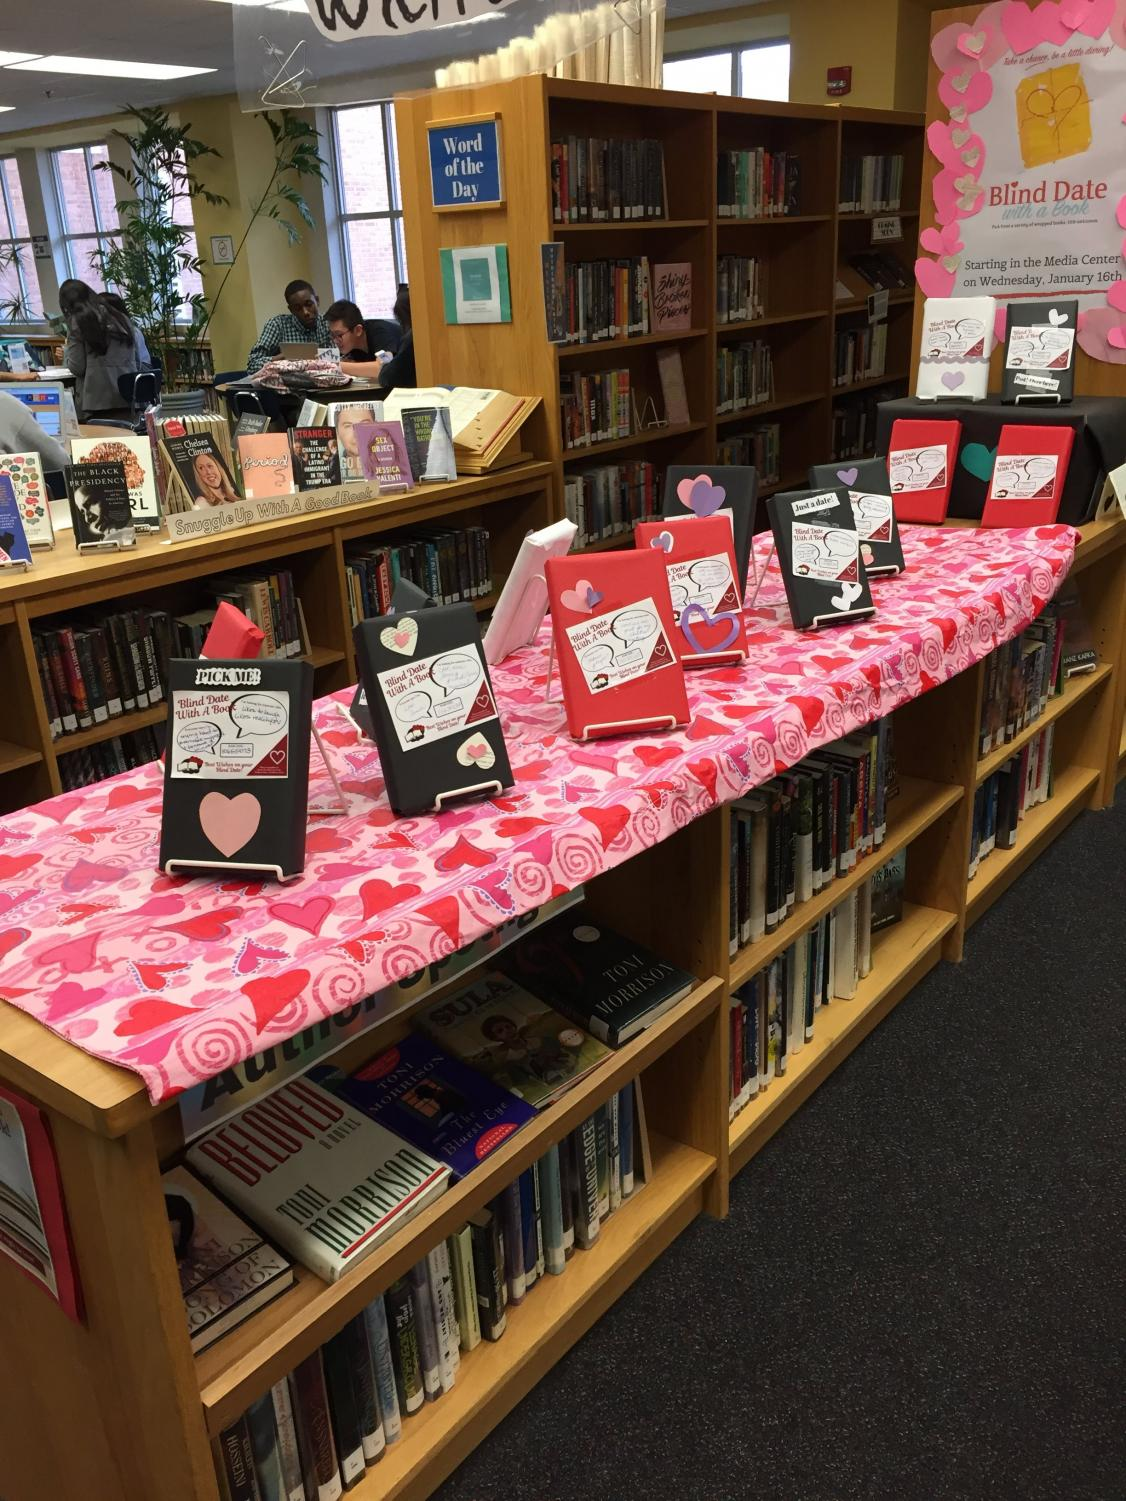 The WCHS media center puts on a blind date with a book display every year.